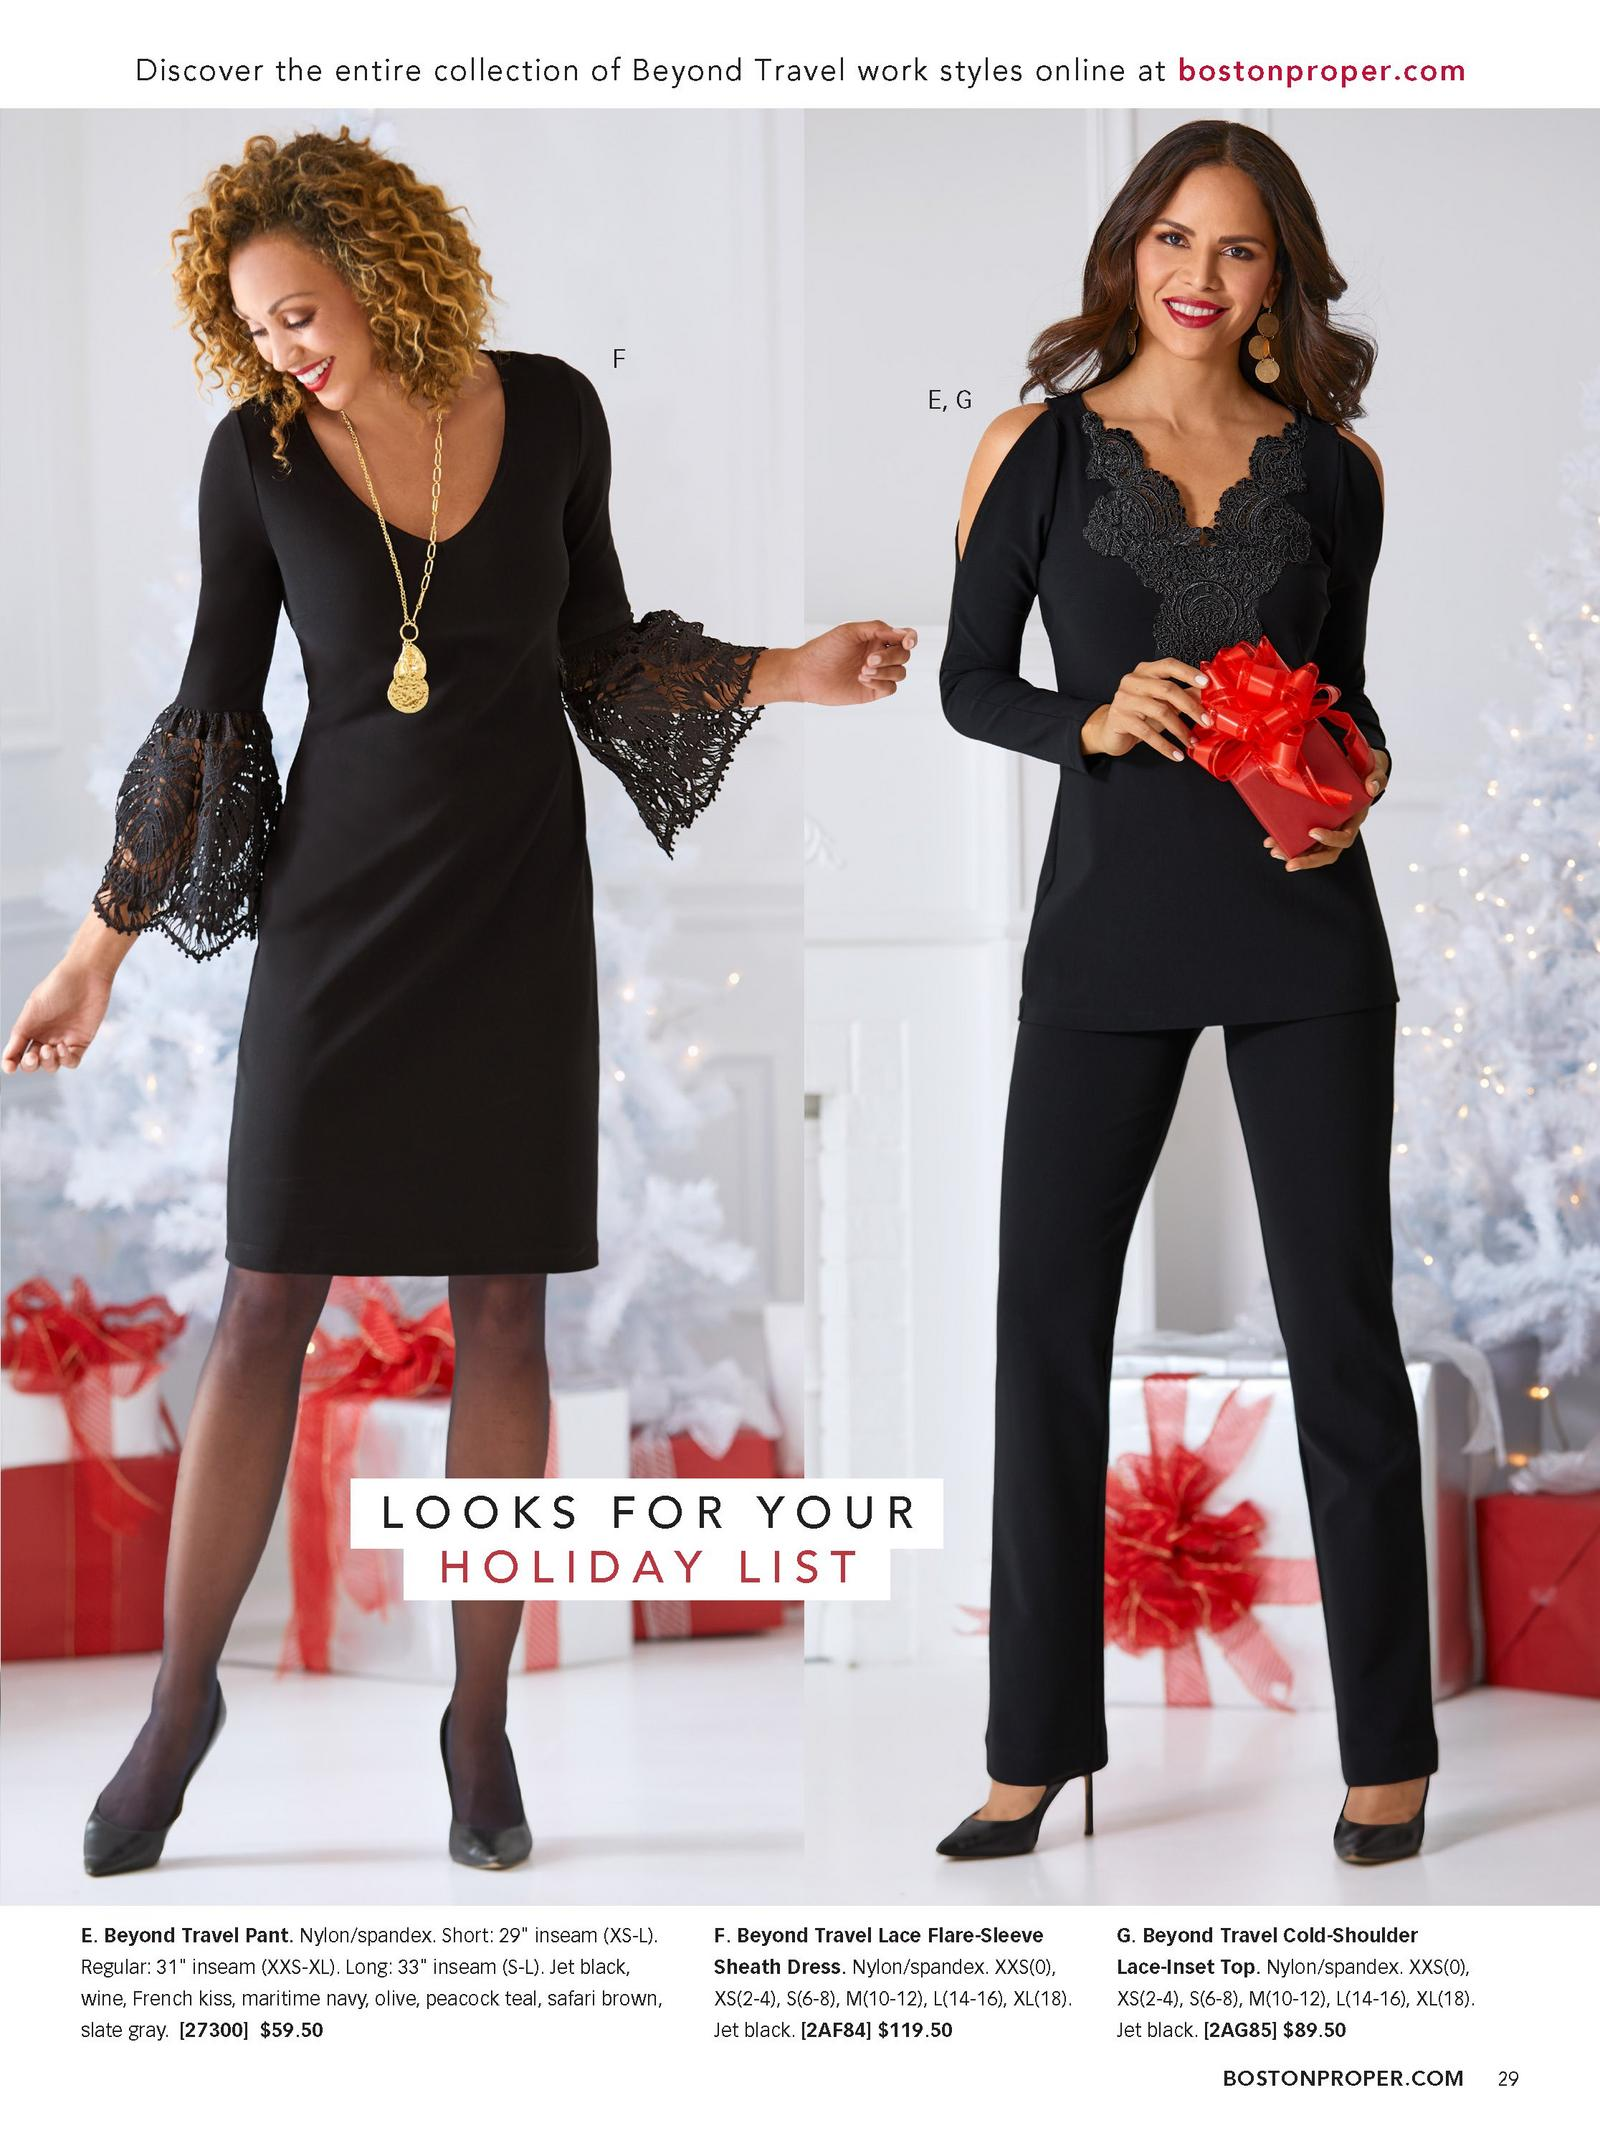 left model: black lace flare-sleeve sheath dress. right model: black cold-shoulder lace top and black pants.